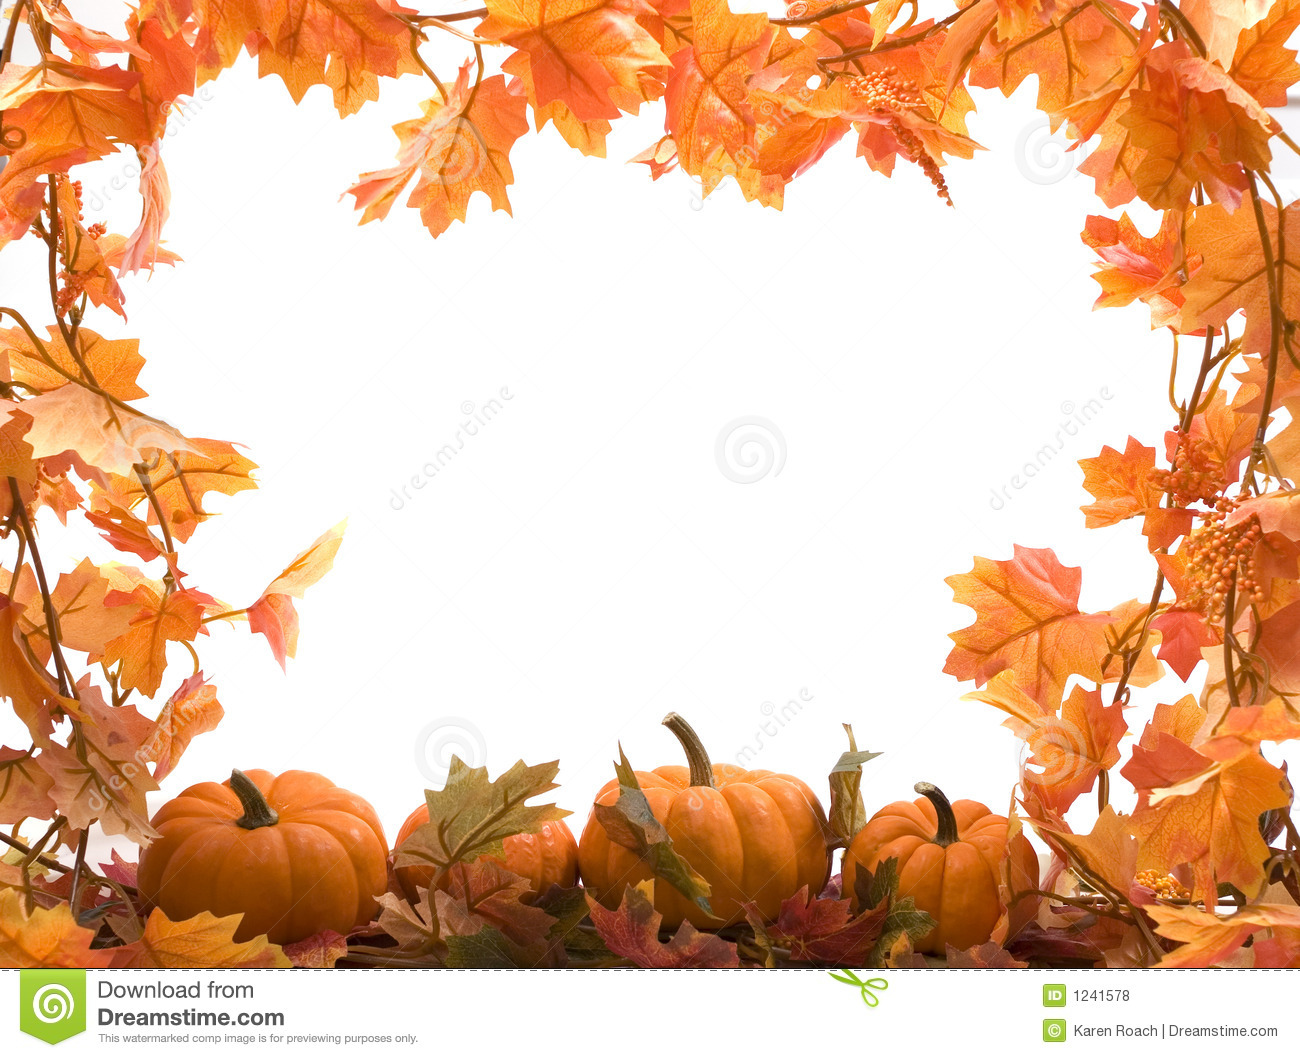 Pumpkins With Fall Leaves Royalty Free Stock Photos   Image: 1241578 Wallpaper